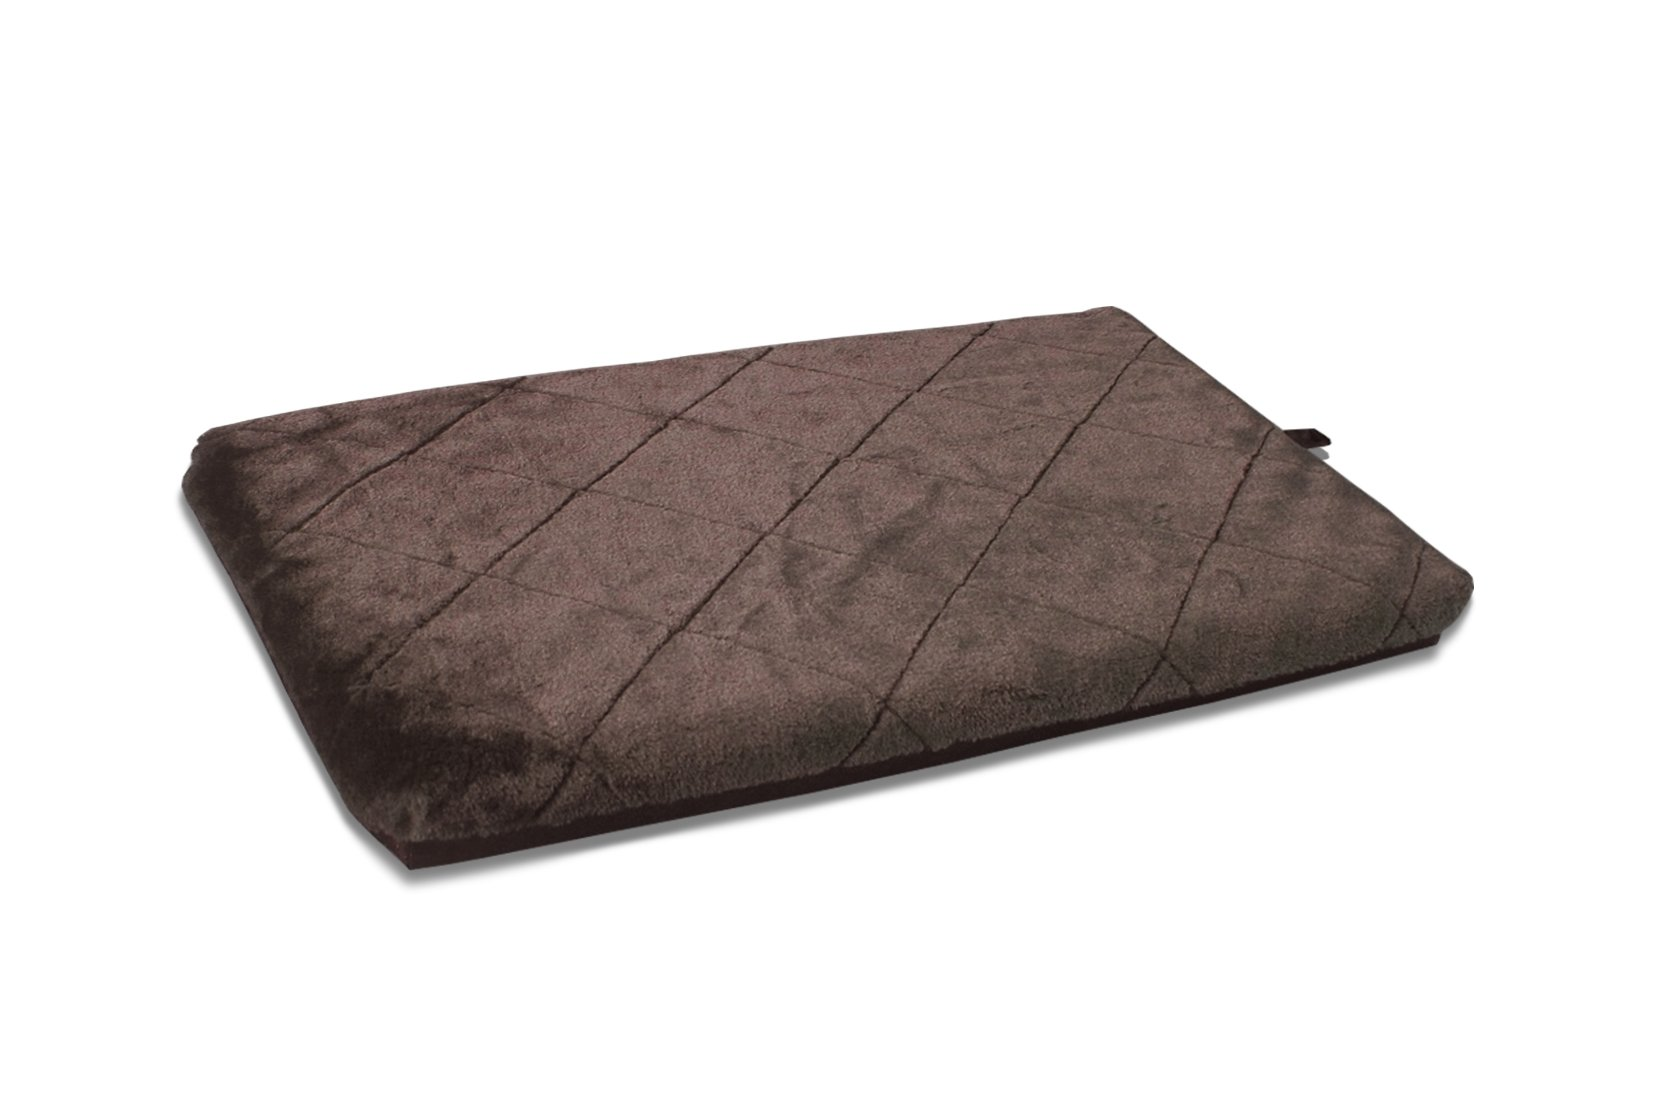 FurHaven Orthopedic Faux Fur Pet Mattress for Crates and Kennels, Espresso, Large